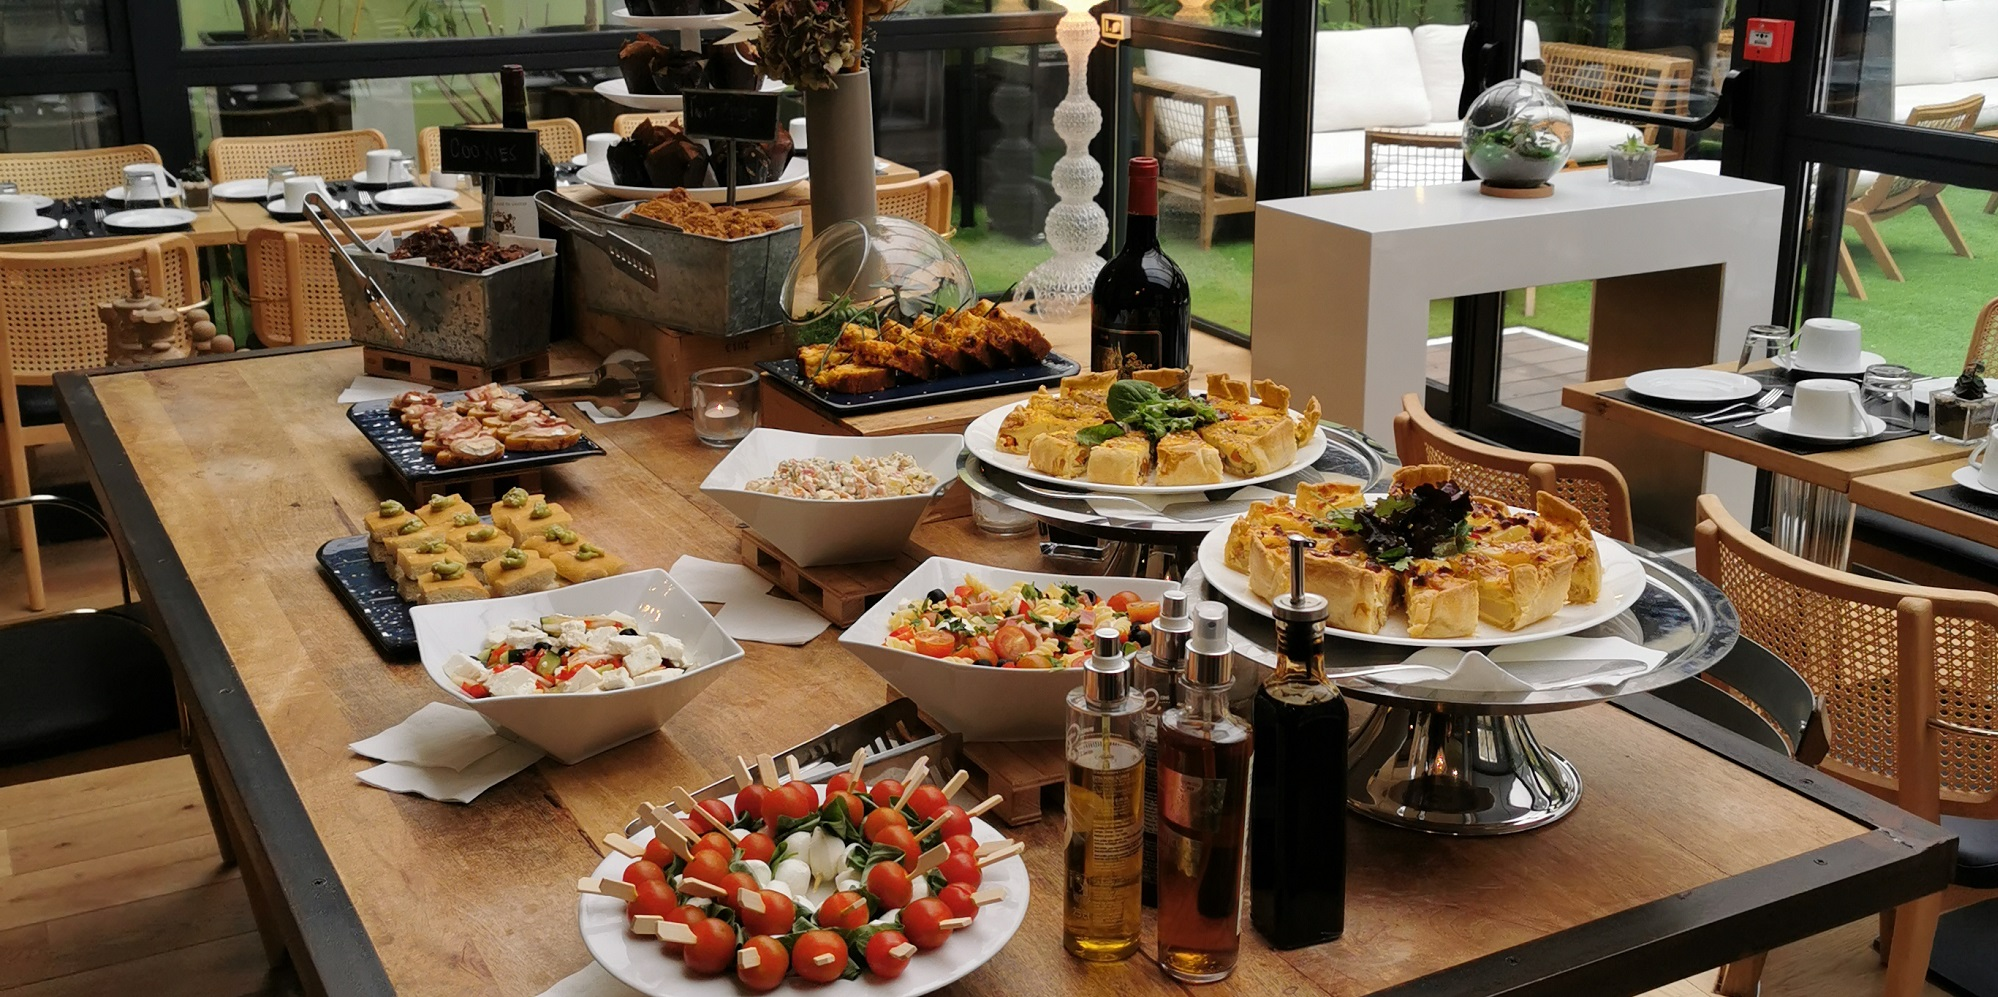 Brunch le boutique hotel bordeaux 33000 bordeaux for Le boutique hotel